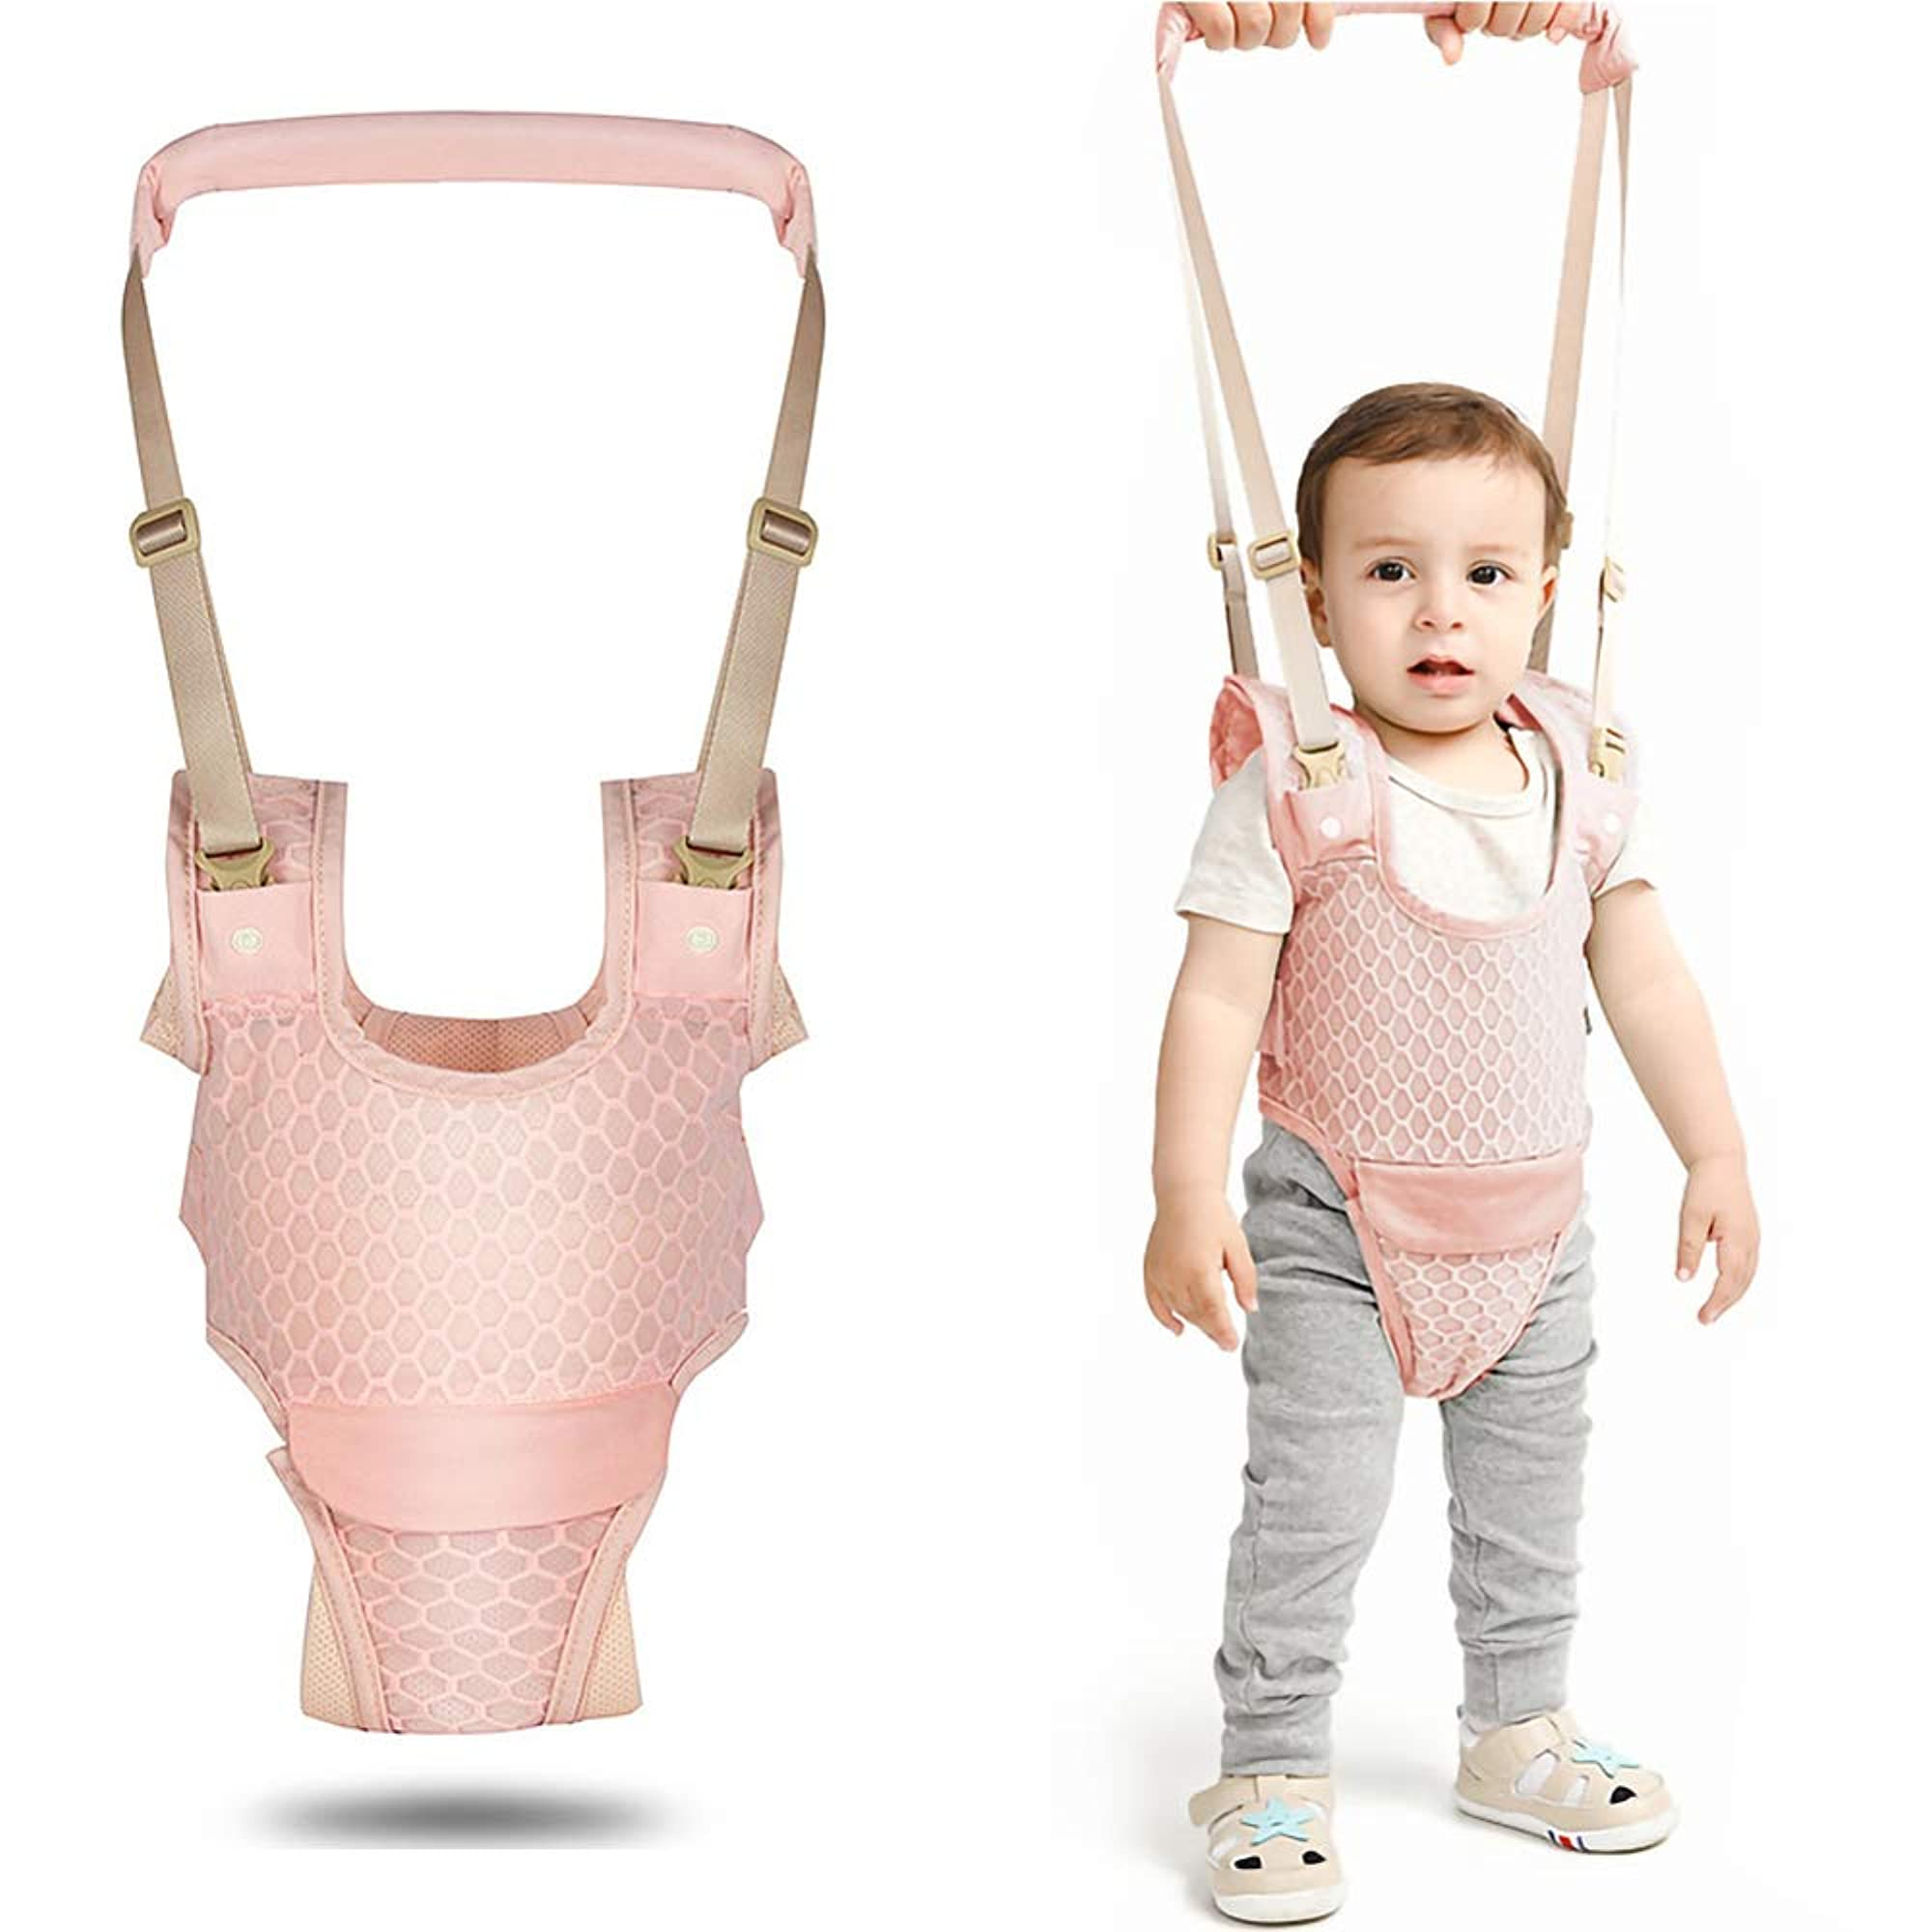 Handheld Baby Walking Harness For Toddlers